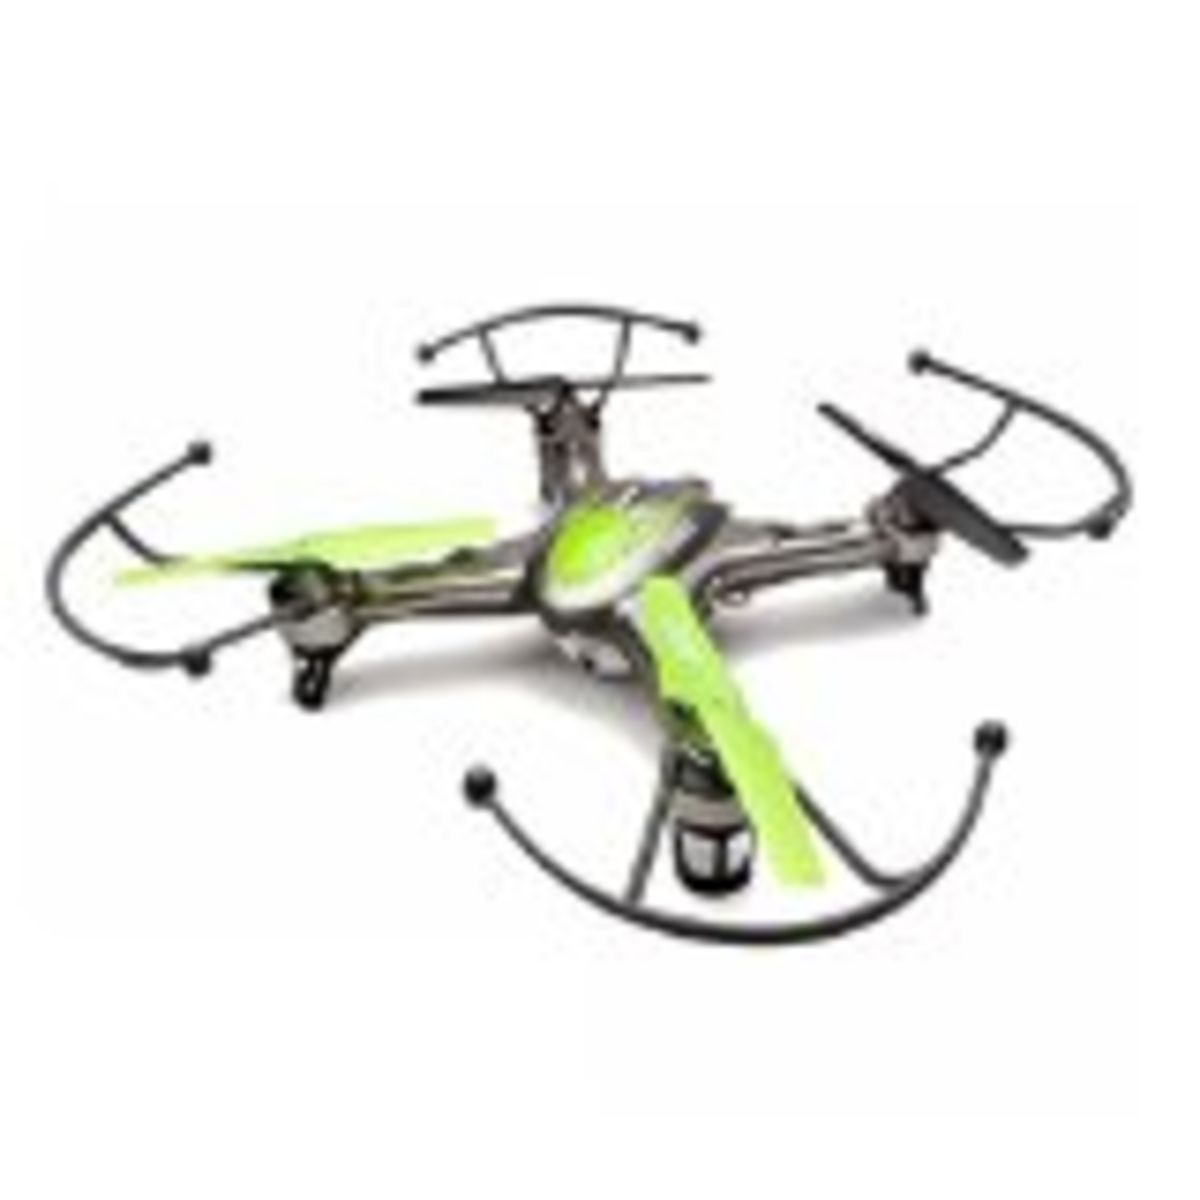 Headline for Best Quadcopter with Camera Mounting and Monitor for Filming Spectacular Scenes